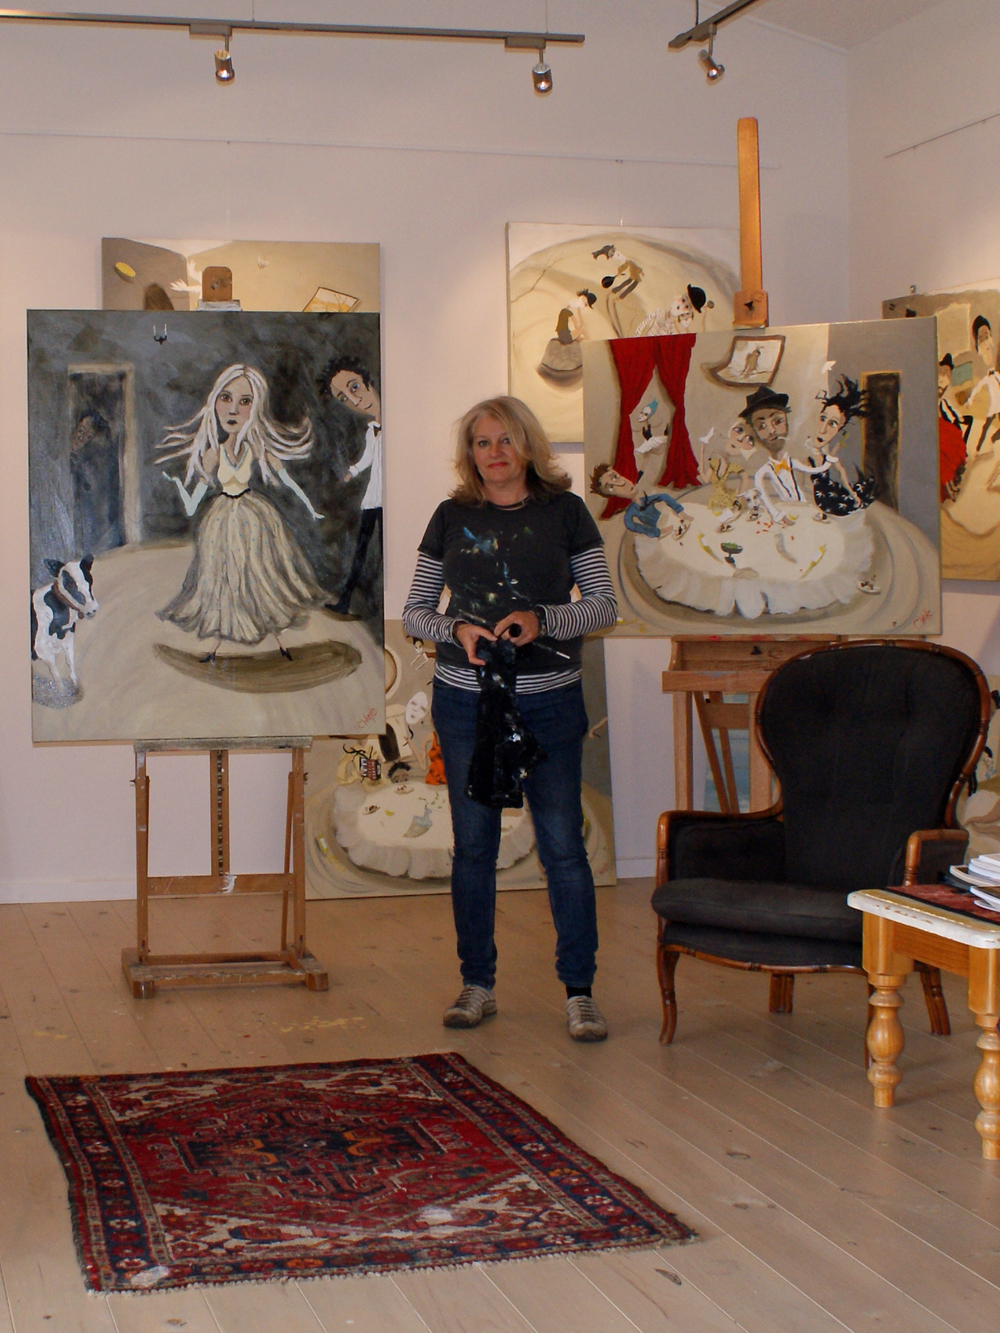 ART GALLERY OF ADELAIDE exhibits galleries of paintings for sale  by leading Australian artist Chris Wake. Engaging, uplifting & unique. Surrealist figurative, beachscapes & seascapes. With more than 15 solo and 40 group exhibitions around the world and in Australia her work is in private and corporate collections & her reputation is growing. The art studio is located in the Adelaide Hills near Stirling & is open by appointment. FAMILY PORTRAITS BY COMMISSION. Art is available to buy online as well. paintings for sale melbourne, paintings for sale sydney, paintings for sale perth, paintings for sale brisbane, paintings for sale adelaide, free delivery Australia